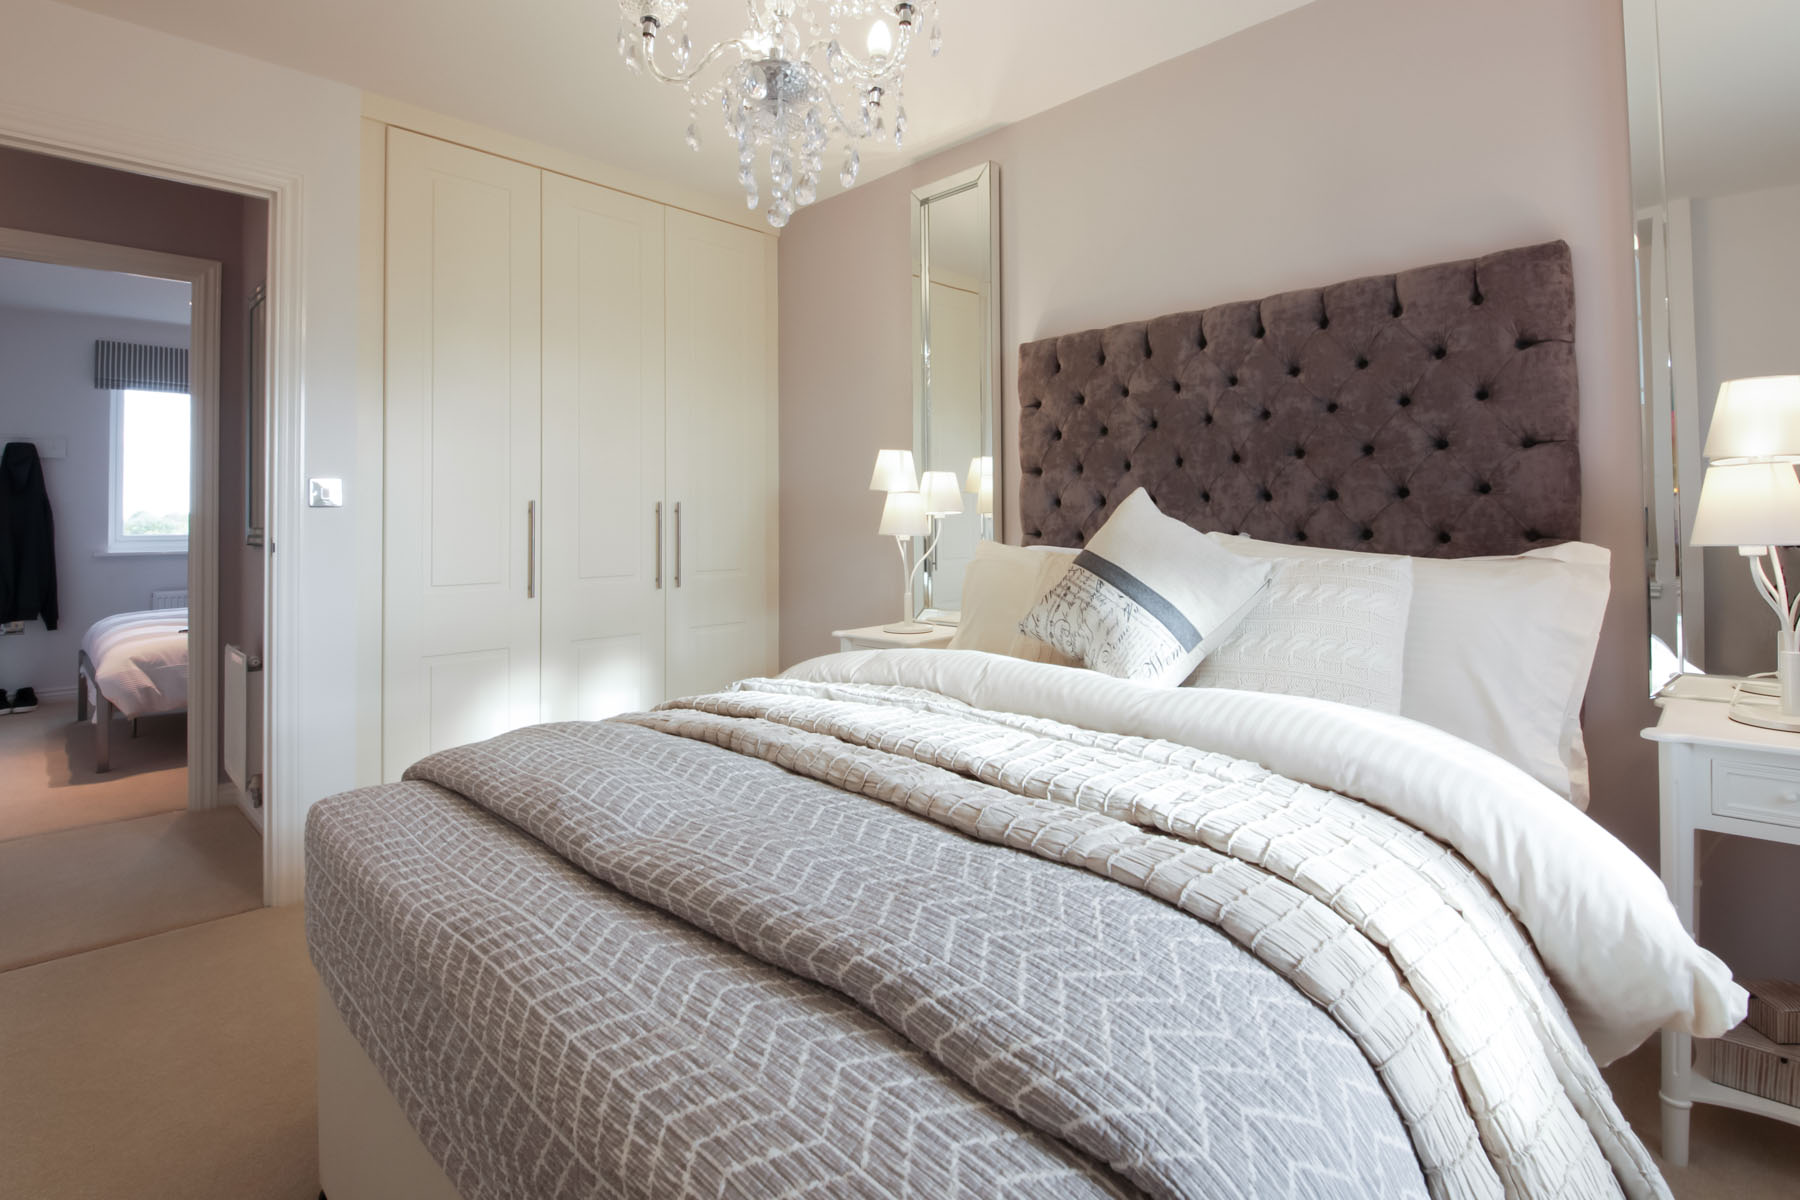 Bradenham bedroom with fitted wardrobes